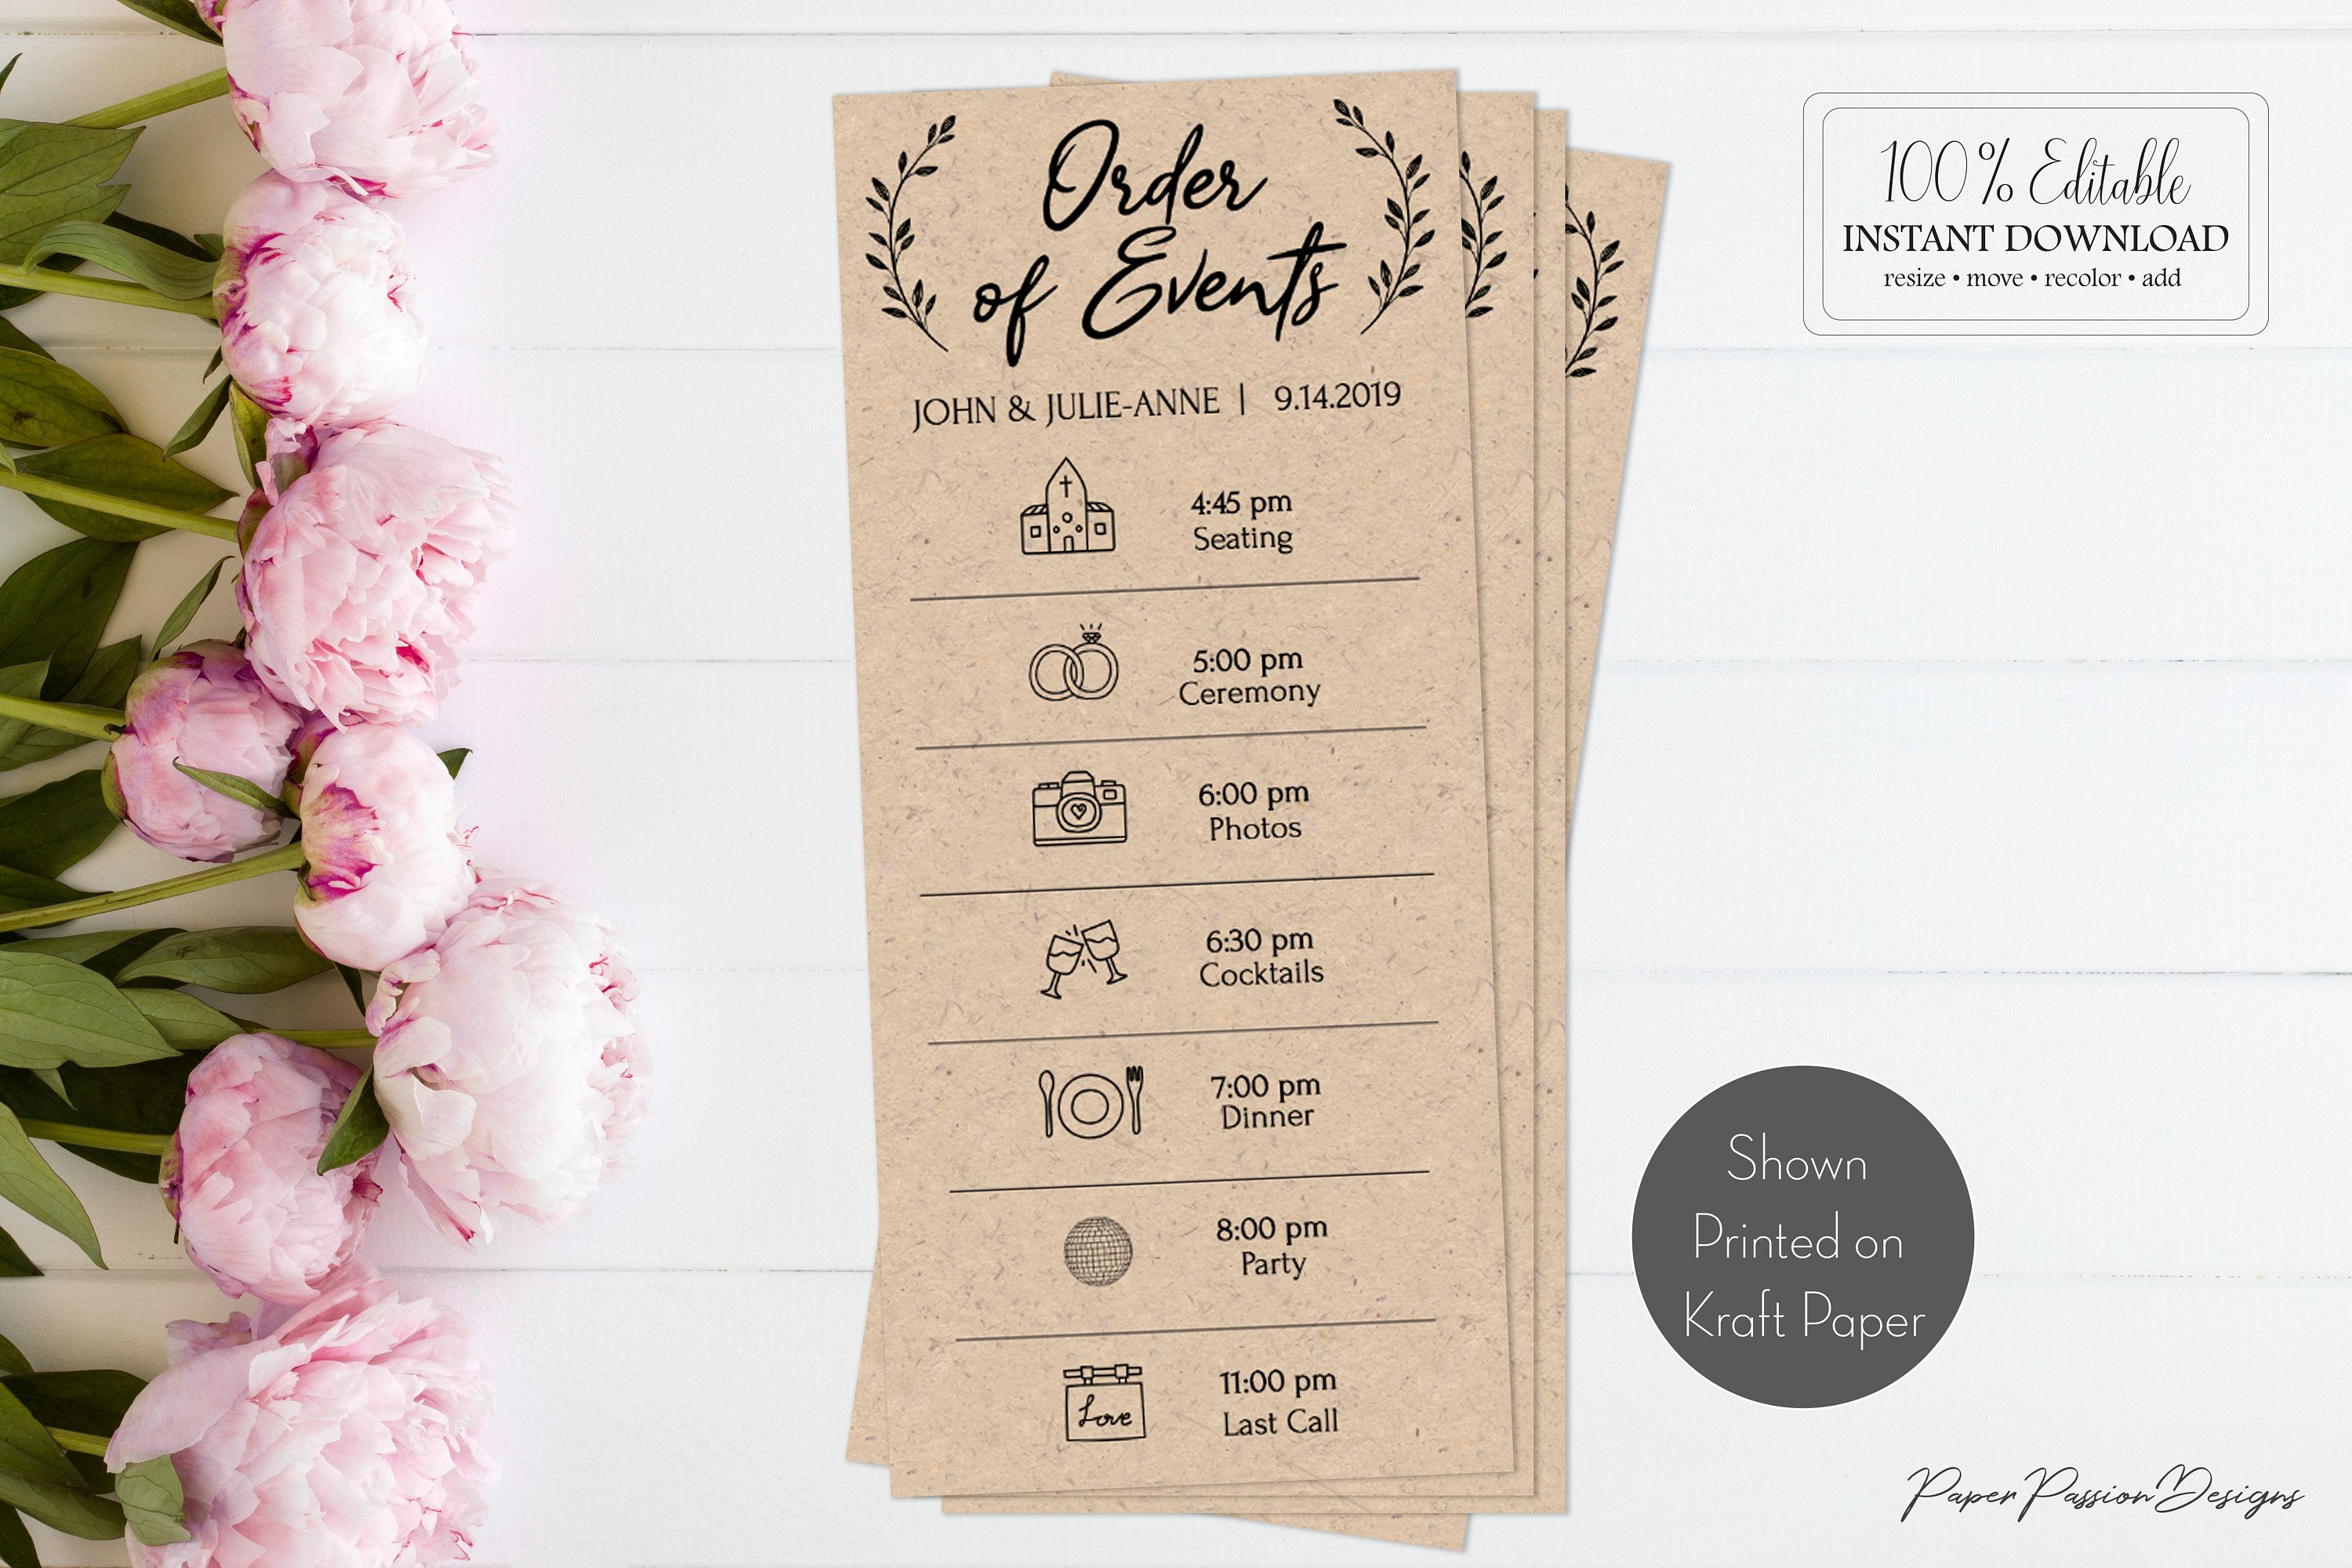 Rustic Wedding Order Of Events Card Printable Timeline Itinerary Agenda 100 Editable Agenda Diy Card Templett Diy Ppw0330 Wedding Order Of Events Wedding Order Event Card